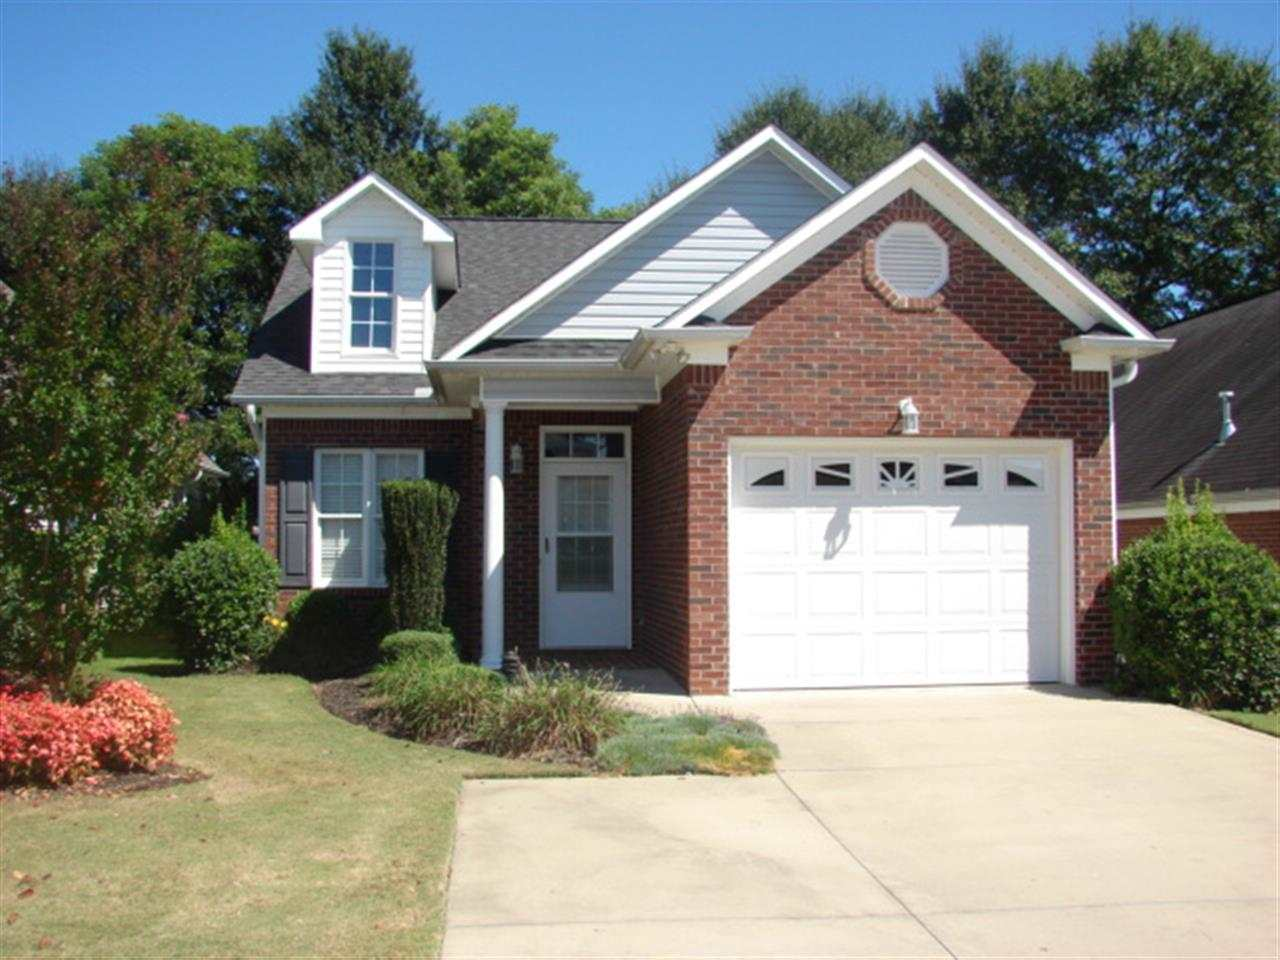 437 Rambling Rose Way, Moore, SC 29369